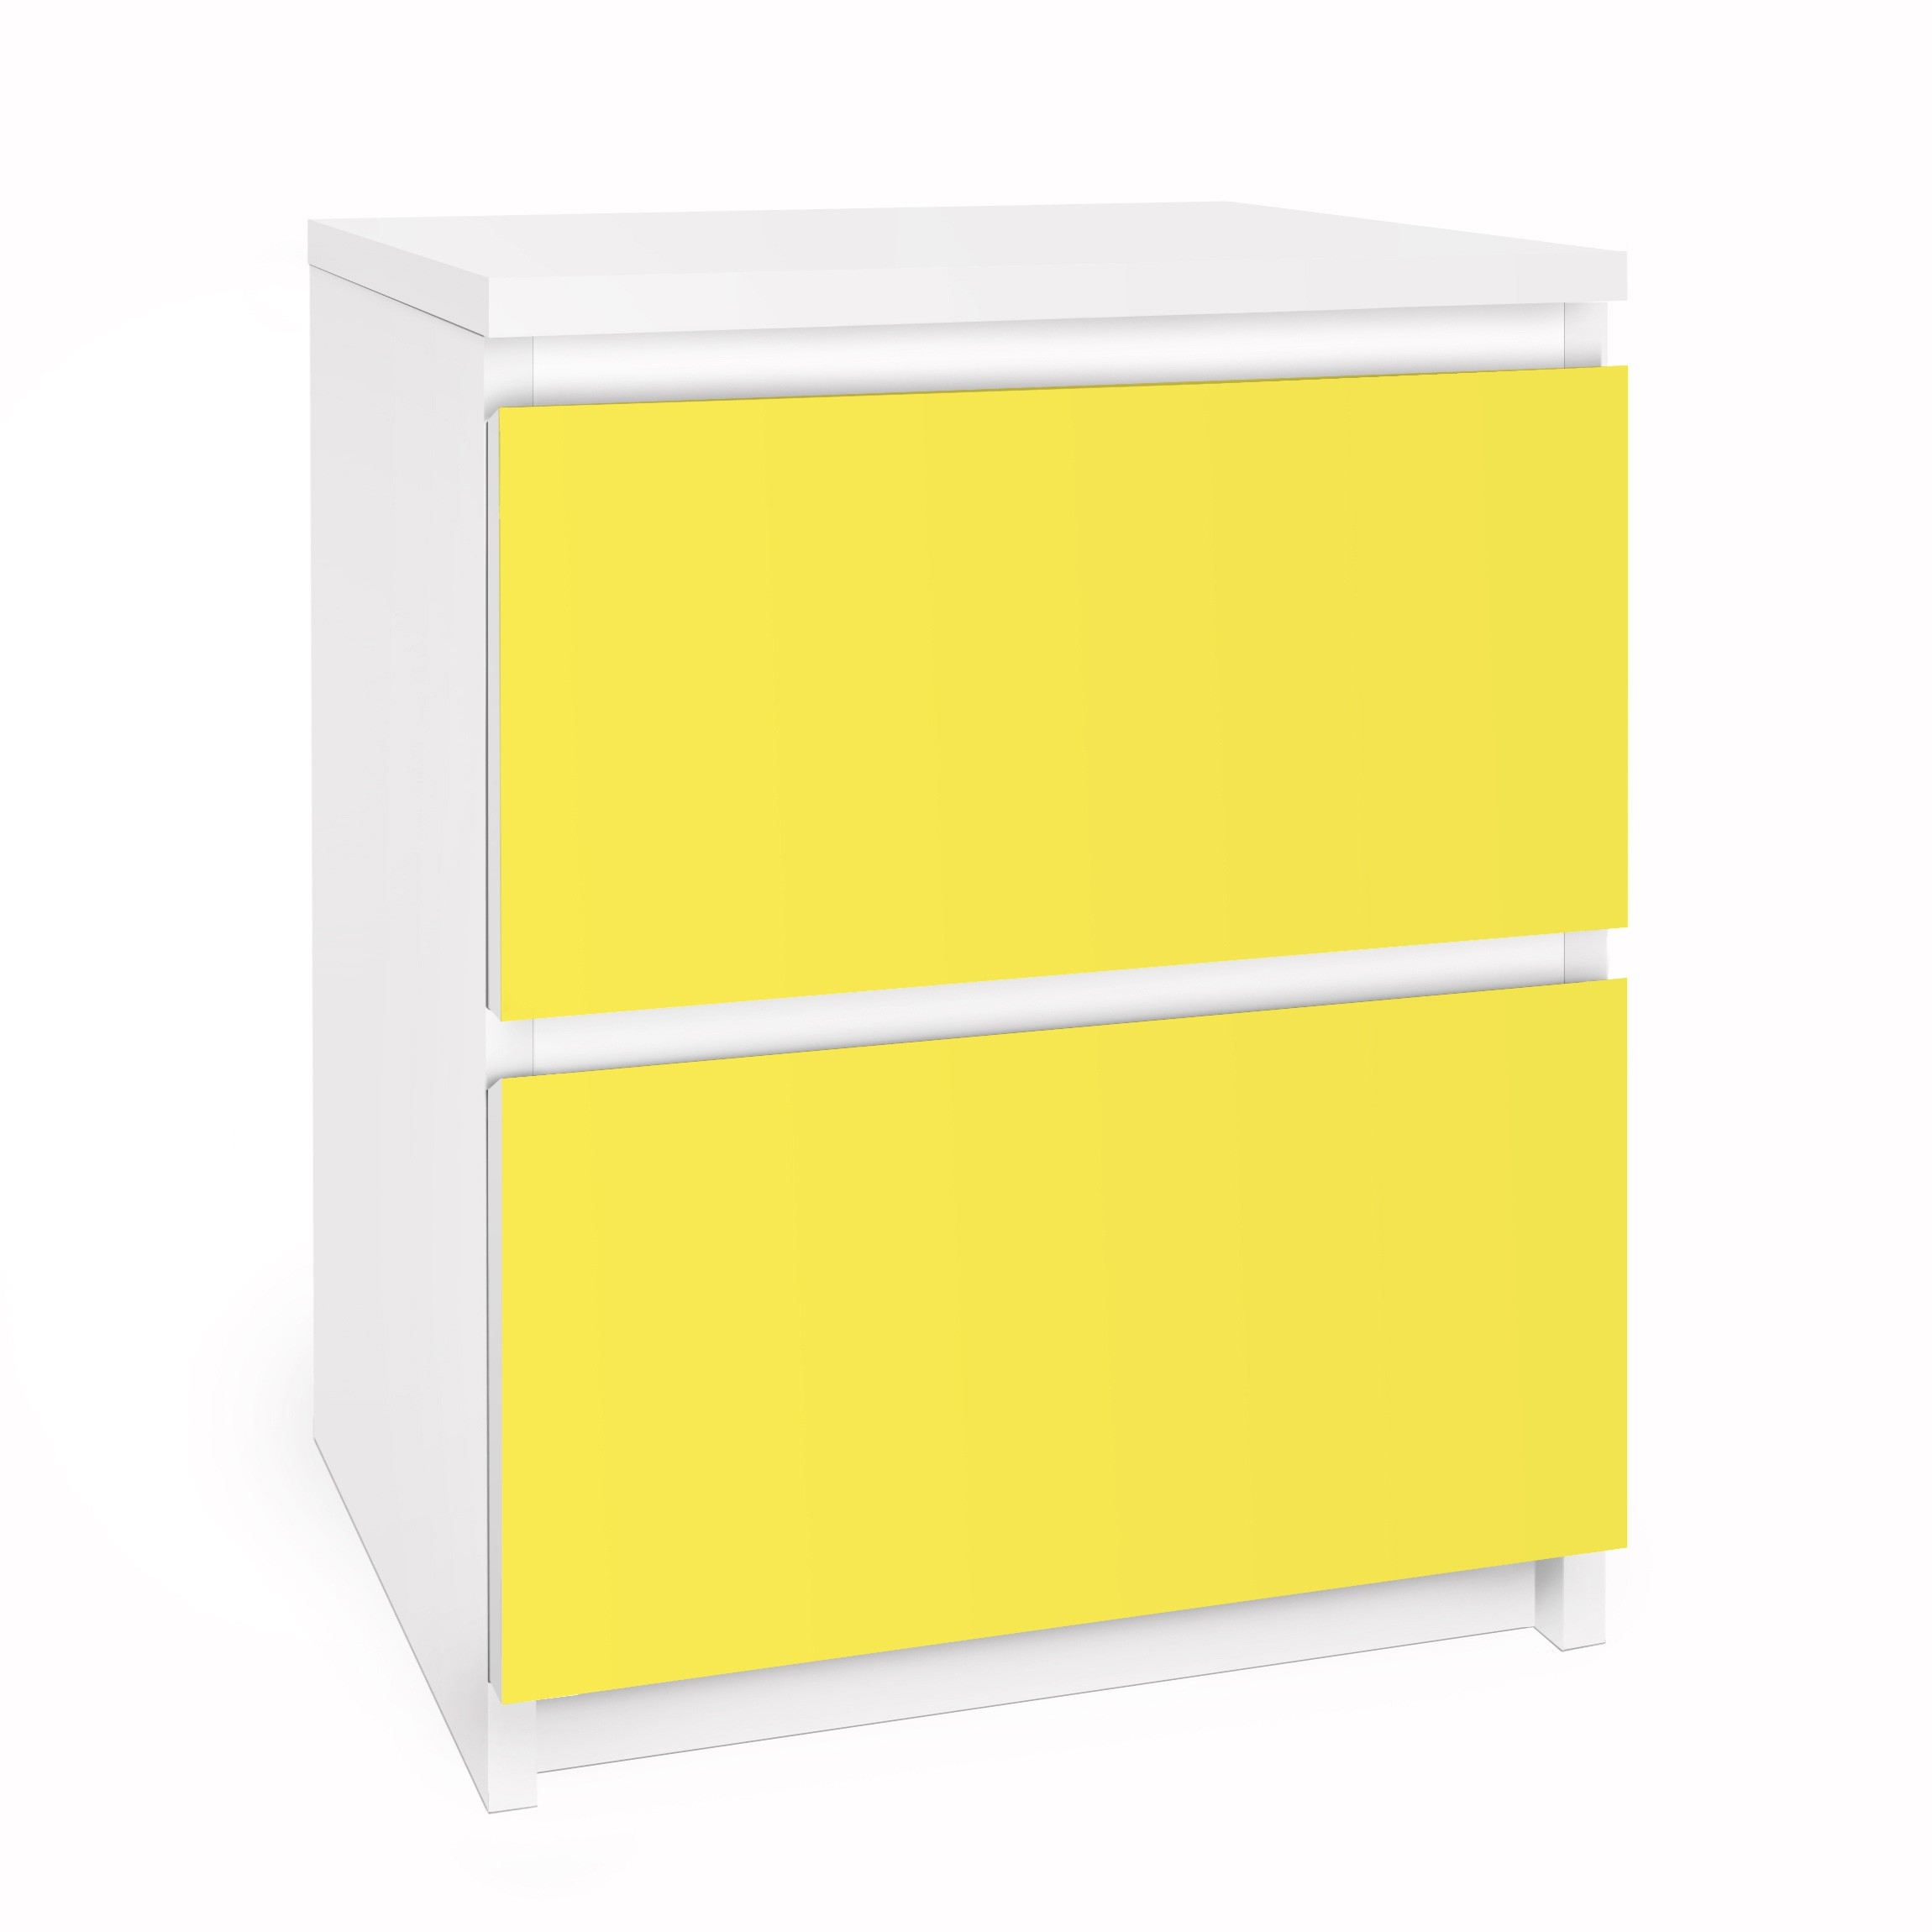 m belfolie f r ikea malm kommode selbstklebefolie colour lemon yellow. Black Bedroom Furniture Sets. Home Design Ideas